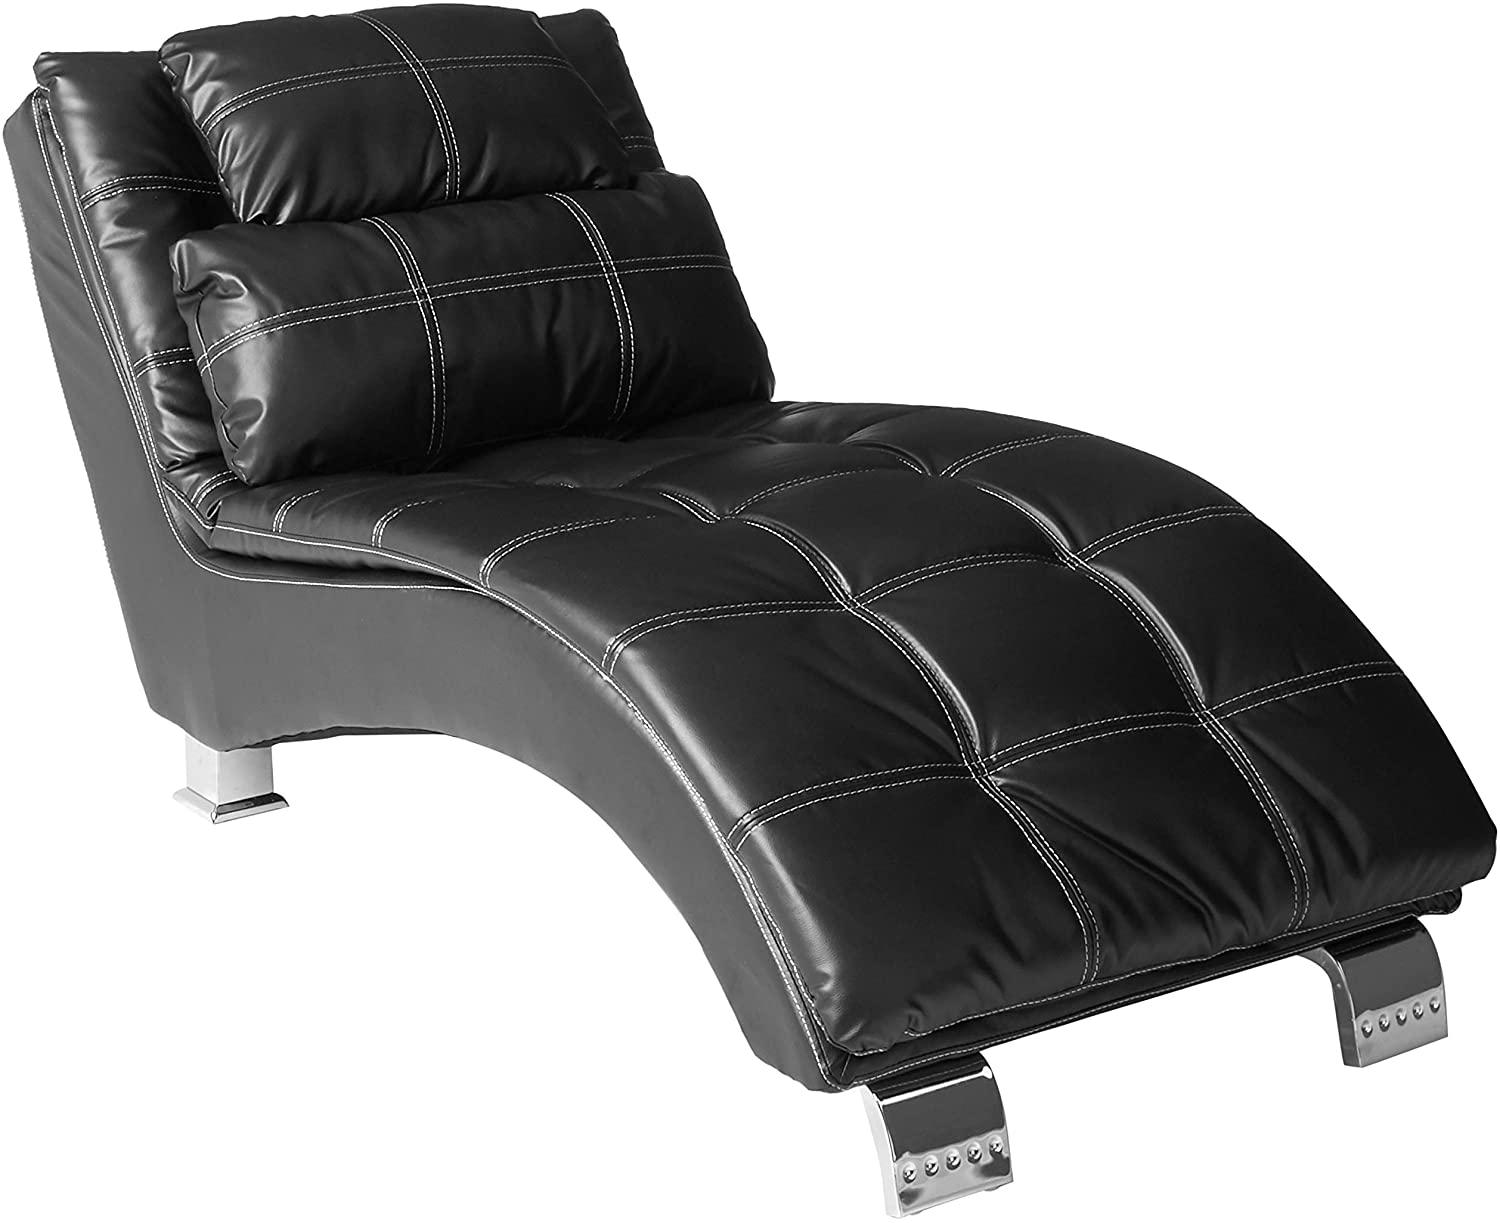 comfortable reading black chaise for bedroom